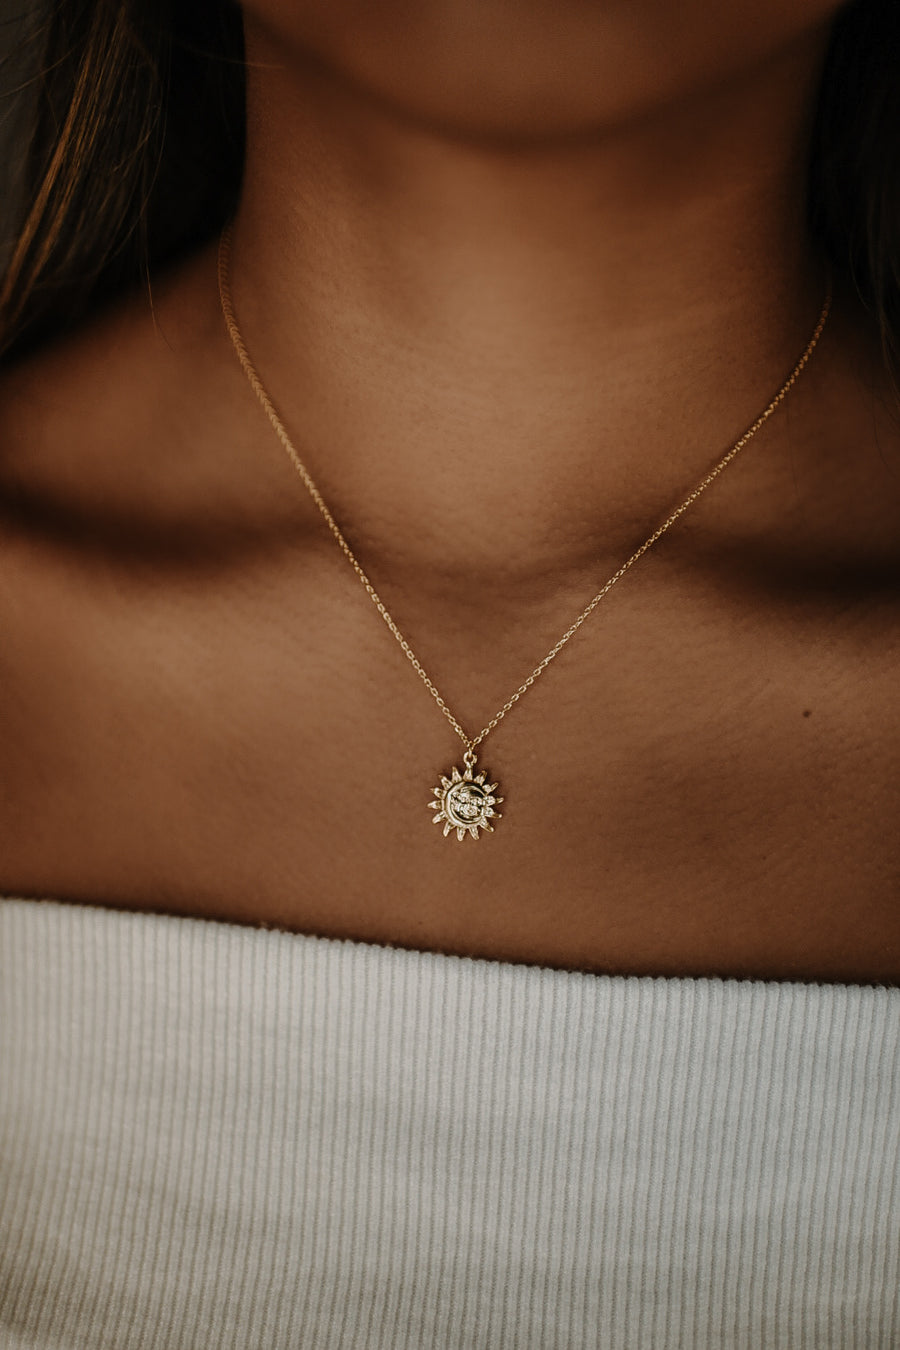 18K Solstice Coin Charm Necklace